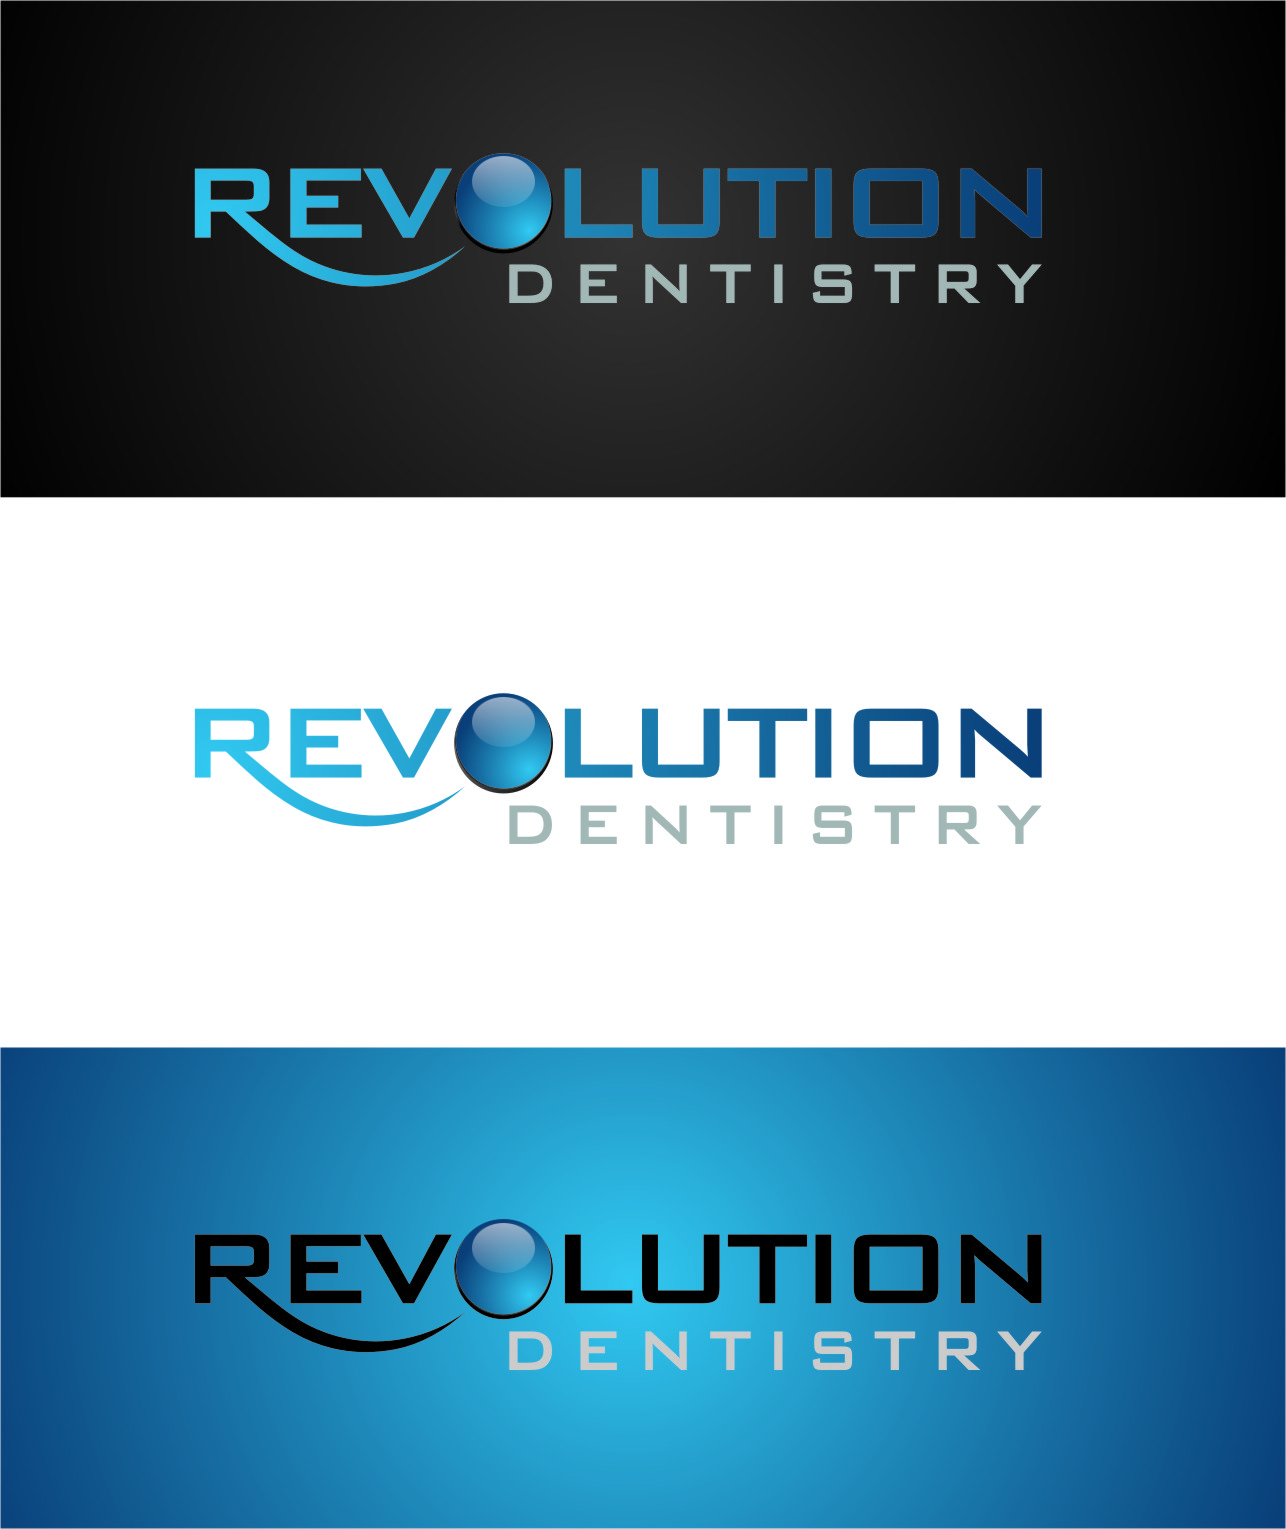 Logo Design by Ngepet_art - Entry No. 260 in the Logo Design Contest Artistic Logo Design for Revolution Dentistry.